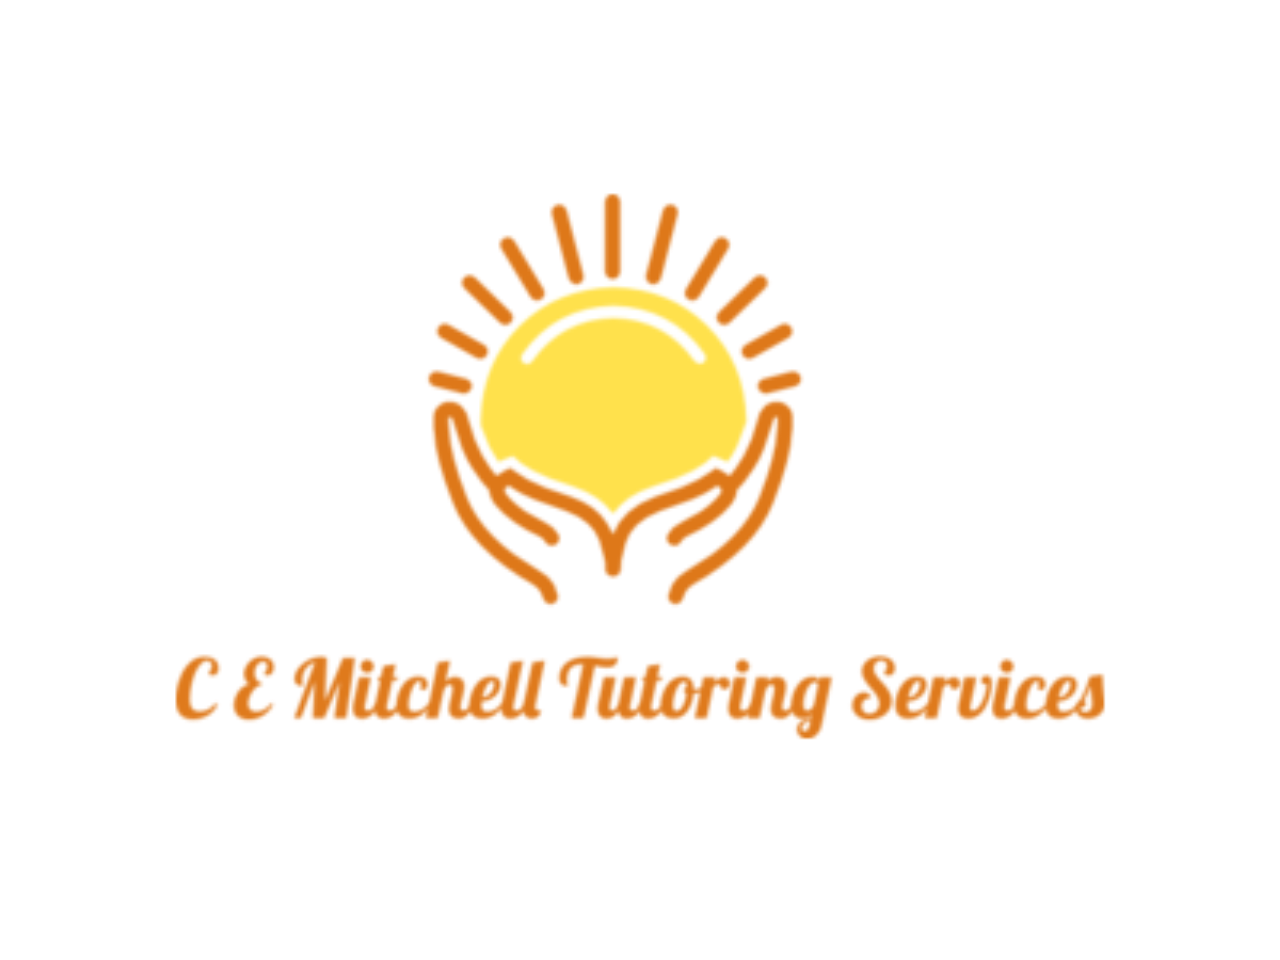 CE Mitchell Tutoring Services